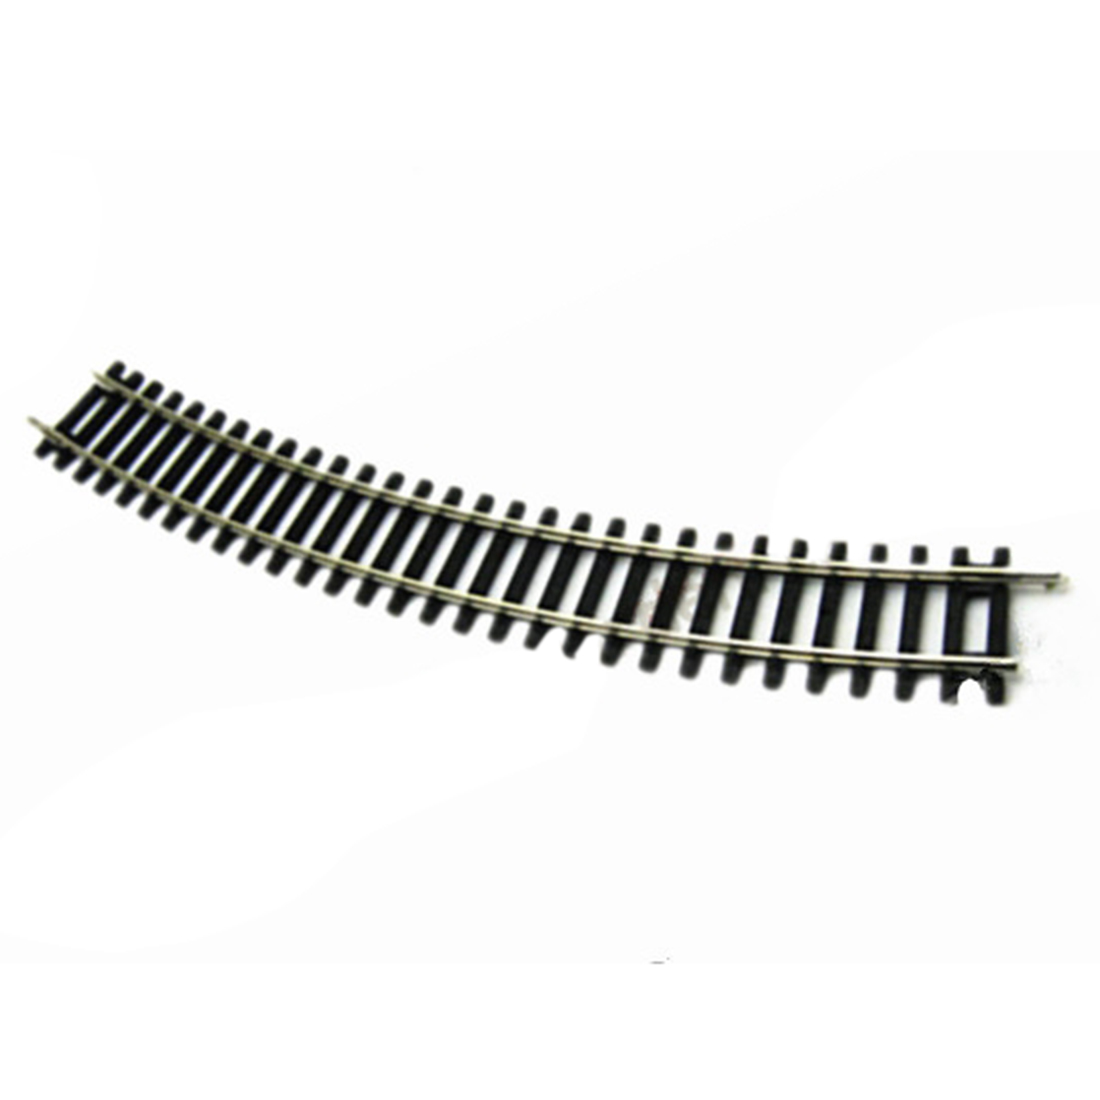 1:87 HO Scale R2 30 Degree Curved Track With Or Without Roadbed And Bolt Set For Train Model Building Kit 2019 New- Black